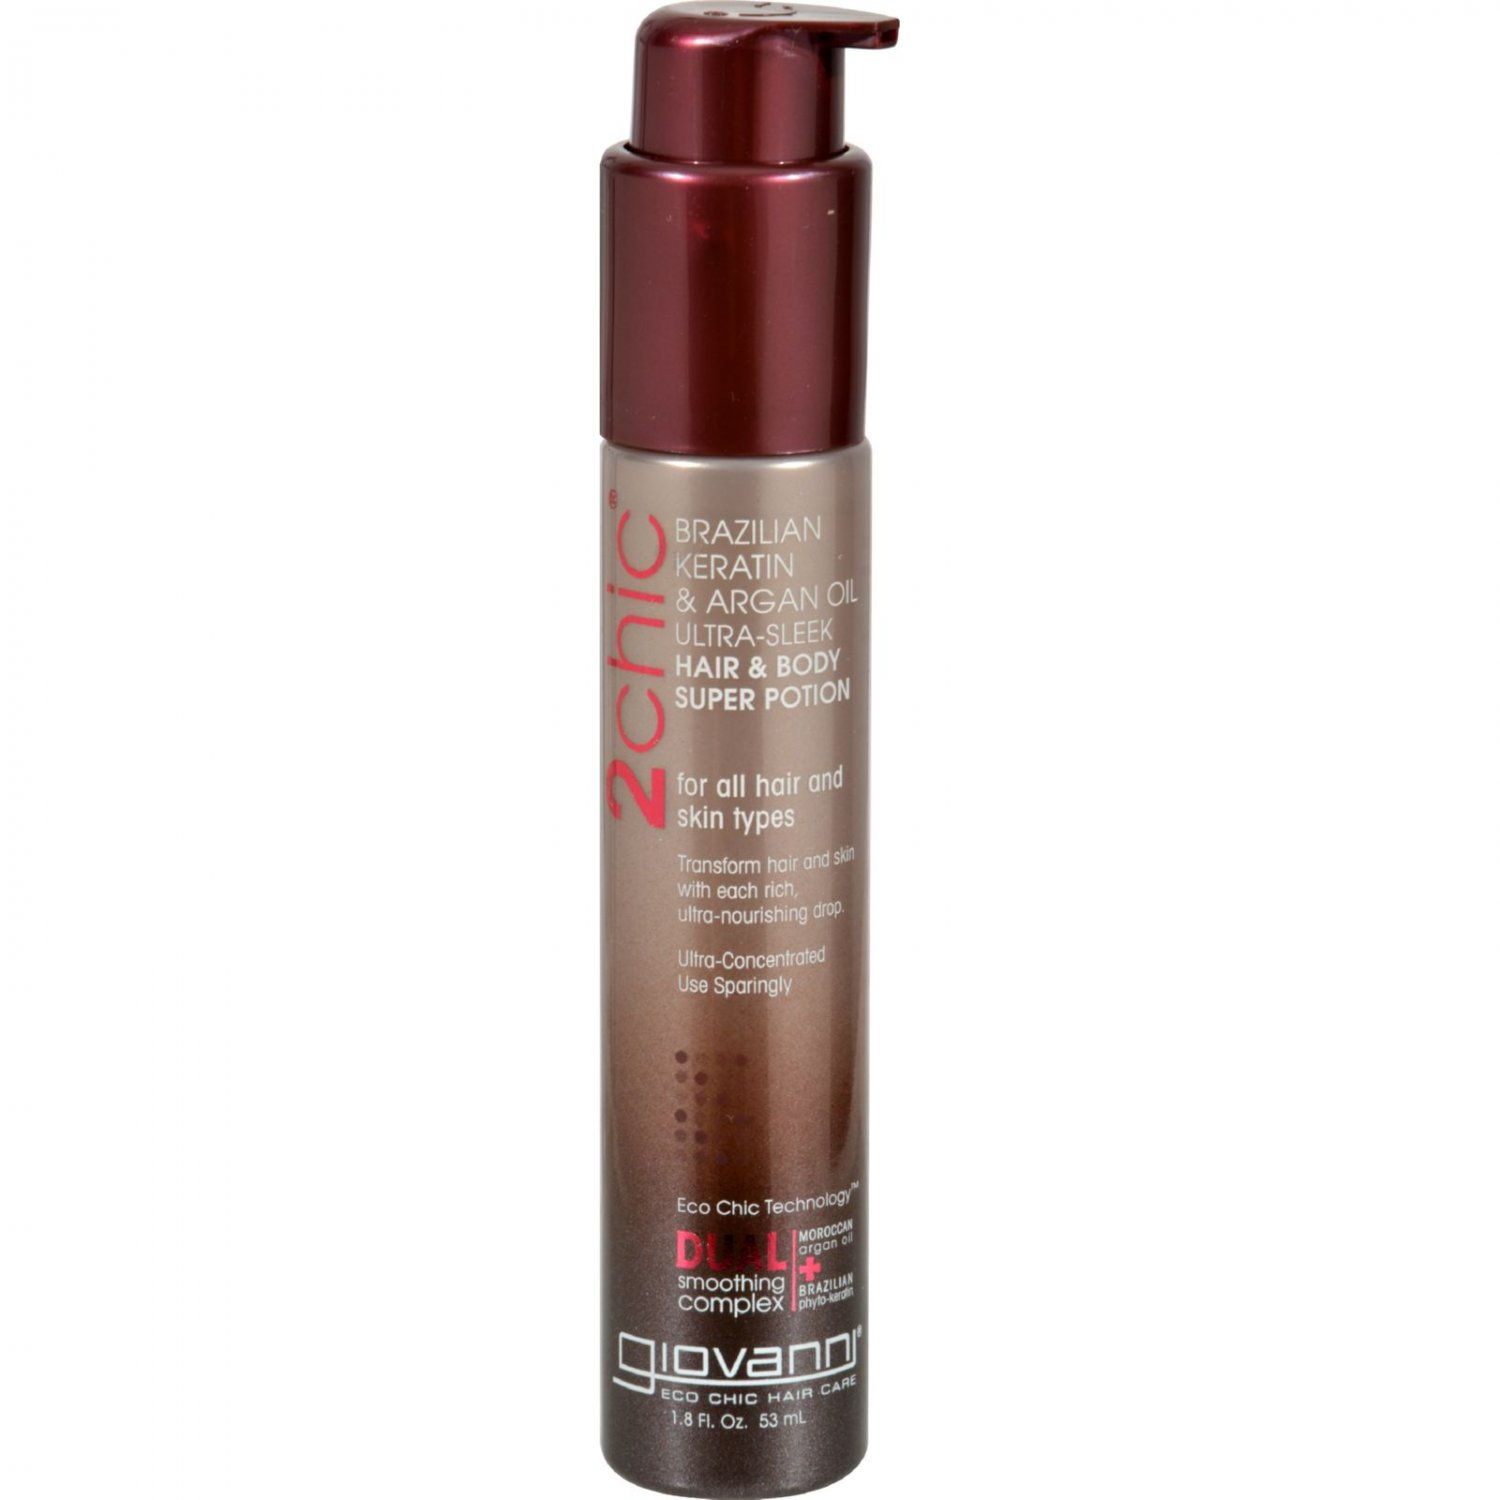 Giovanni 2chic Ultra-Sleek Hair and Body Super Potion with Brazilian Keratin and Argan Oil - 1.8 fl